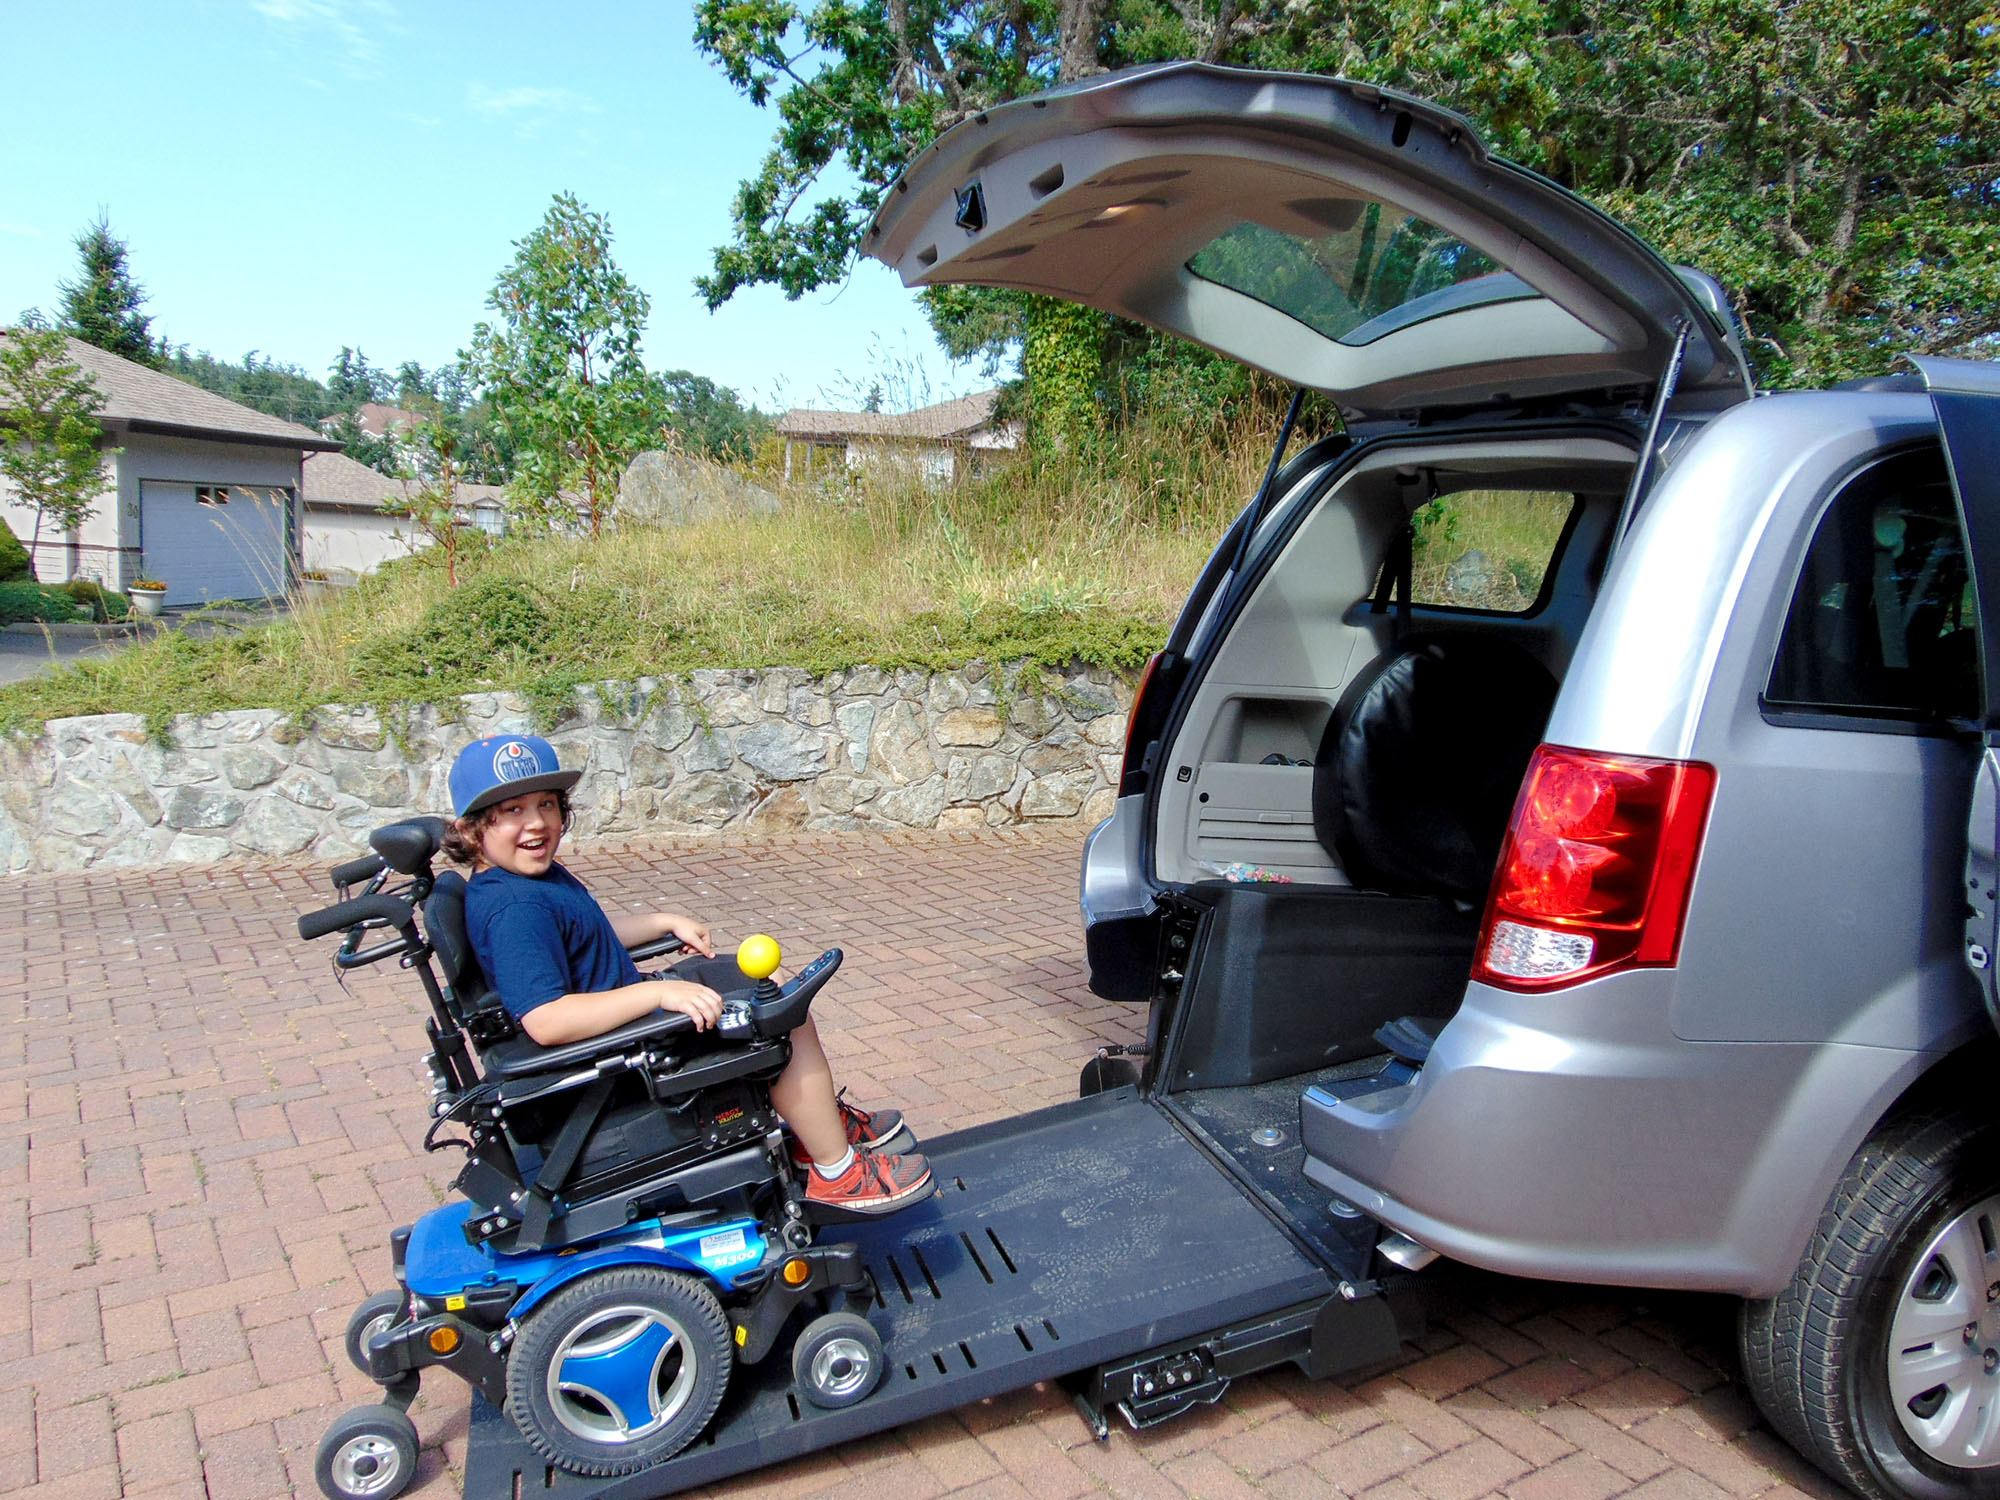 Dacian getting into his family's wheelchair-converted van (Variety)